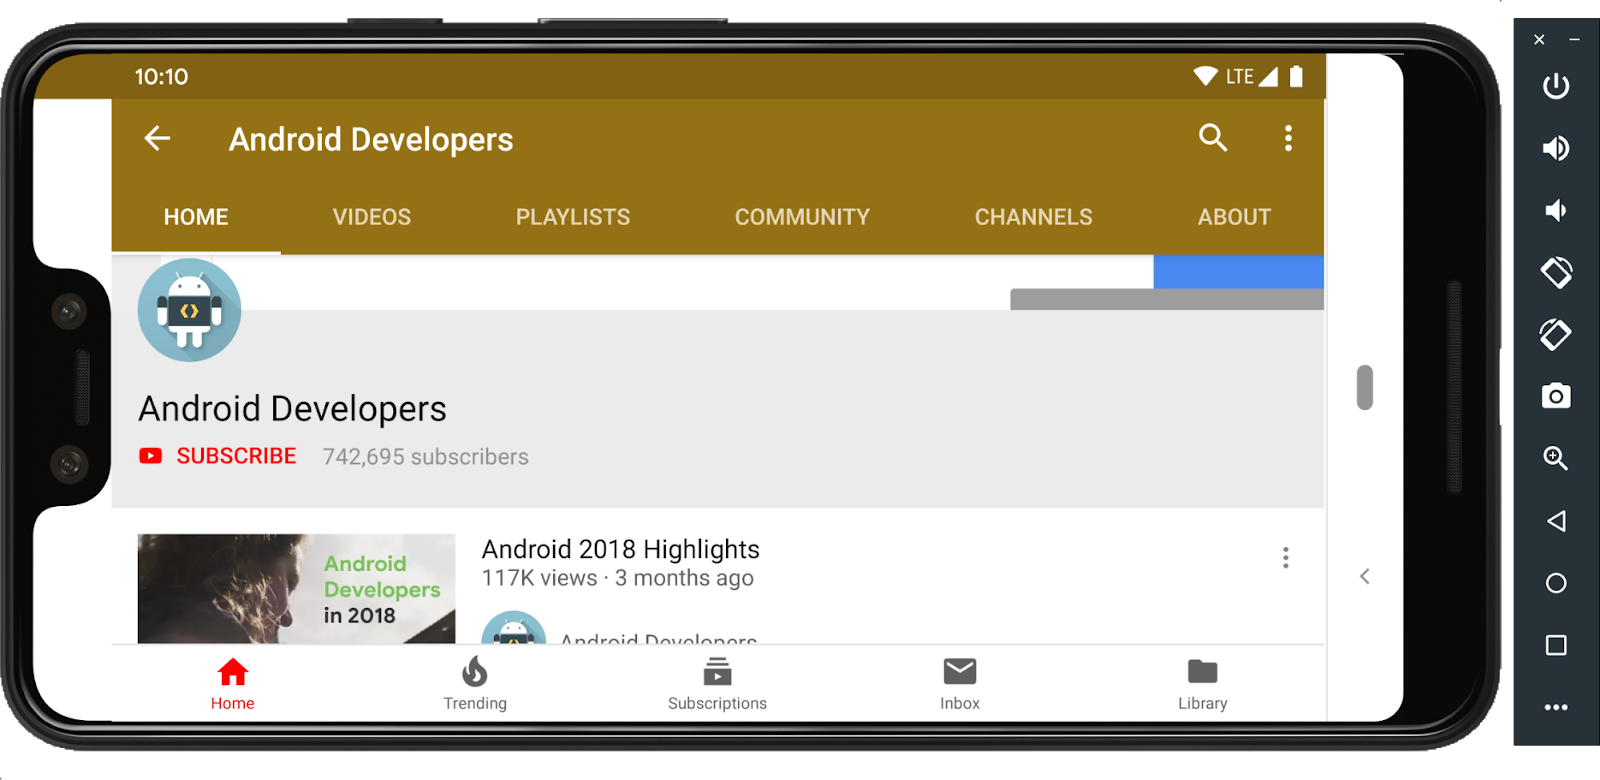 Android Developers YouTube channel UI on landscape mode.